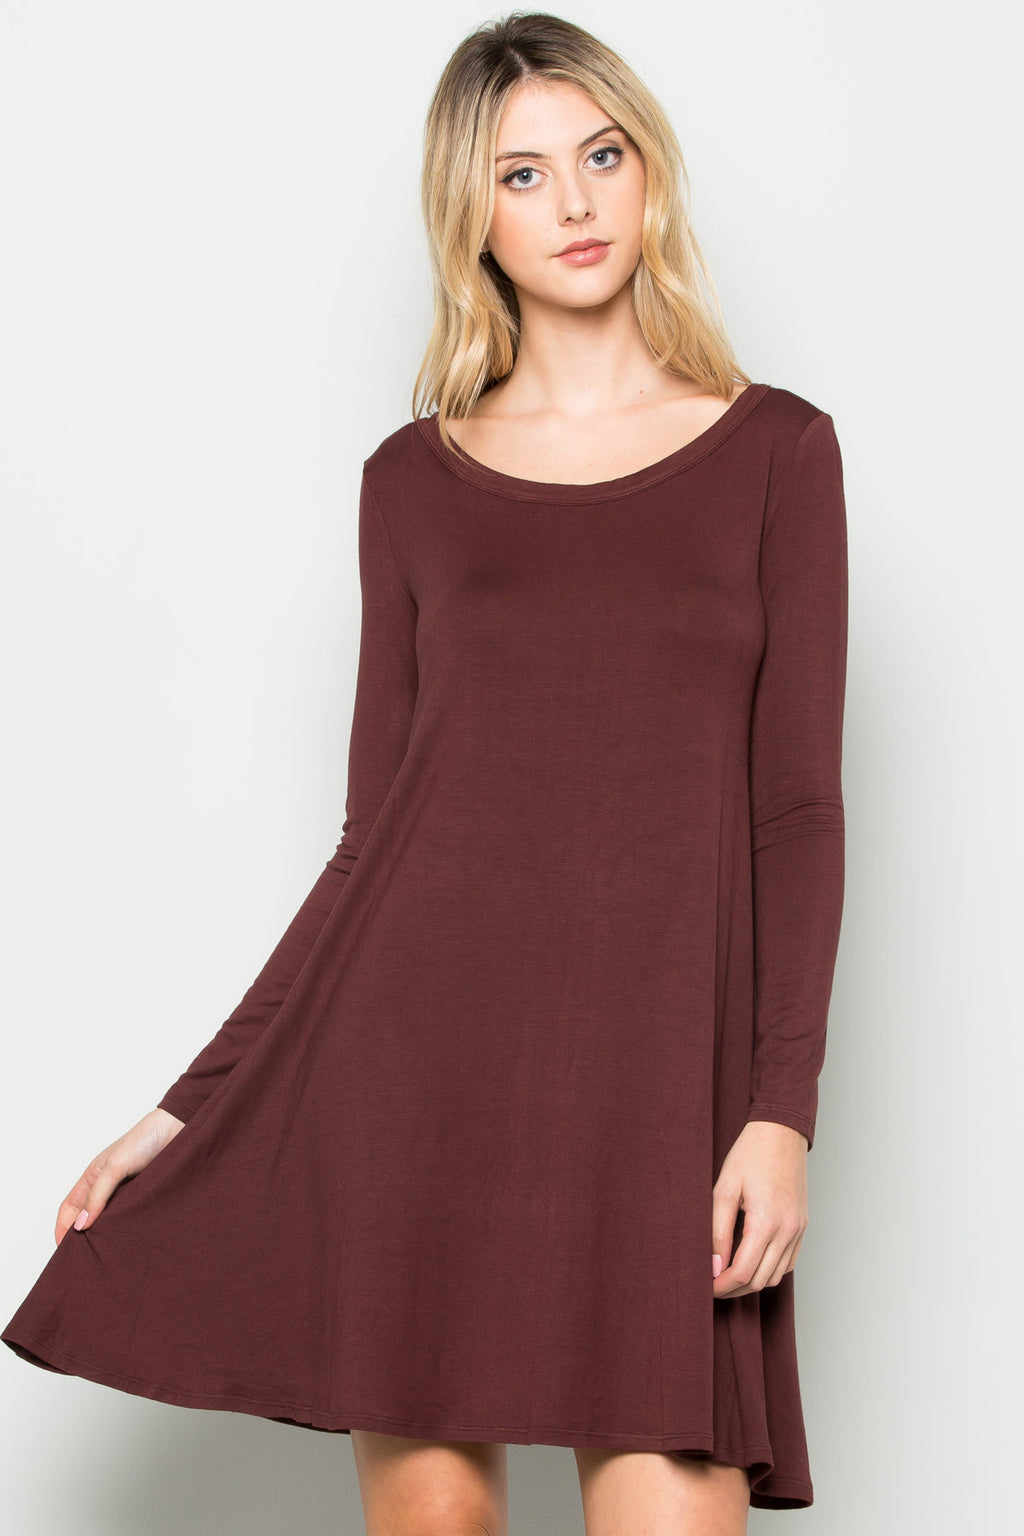 Java Long Sleeve Open Back Swing Dress - Dresses - My Yuccie - 4